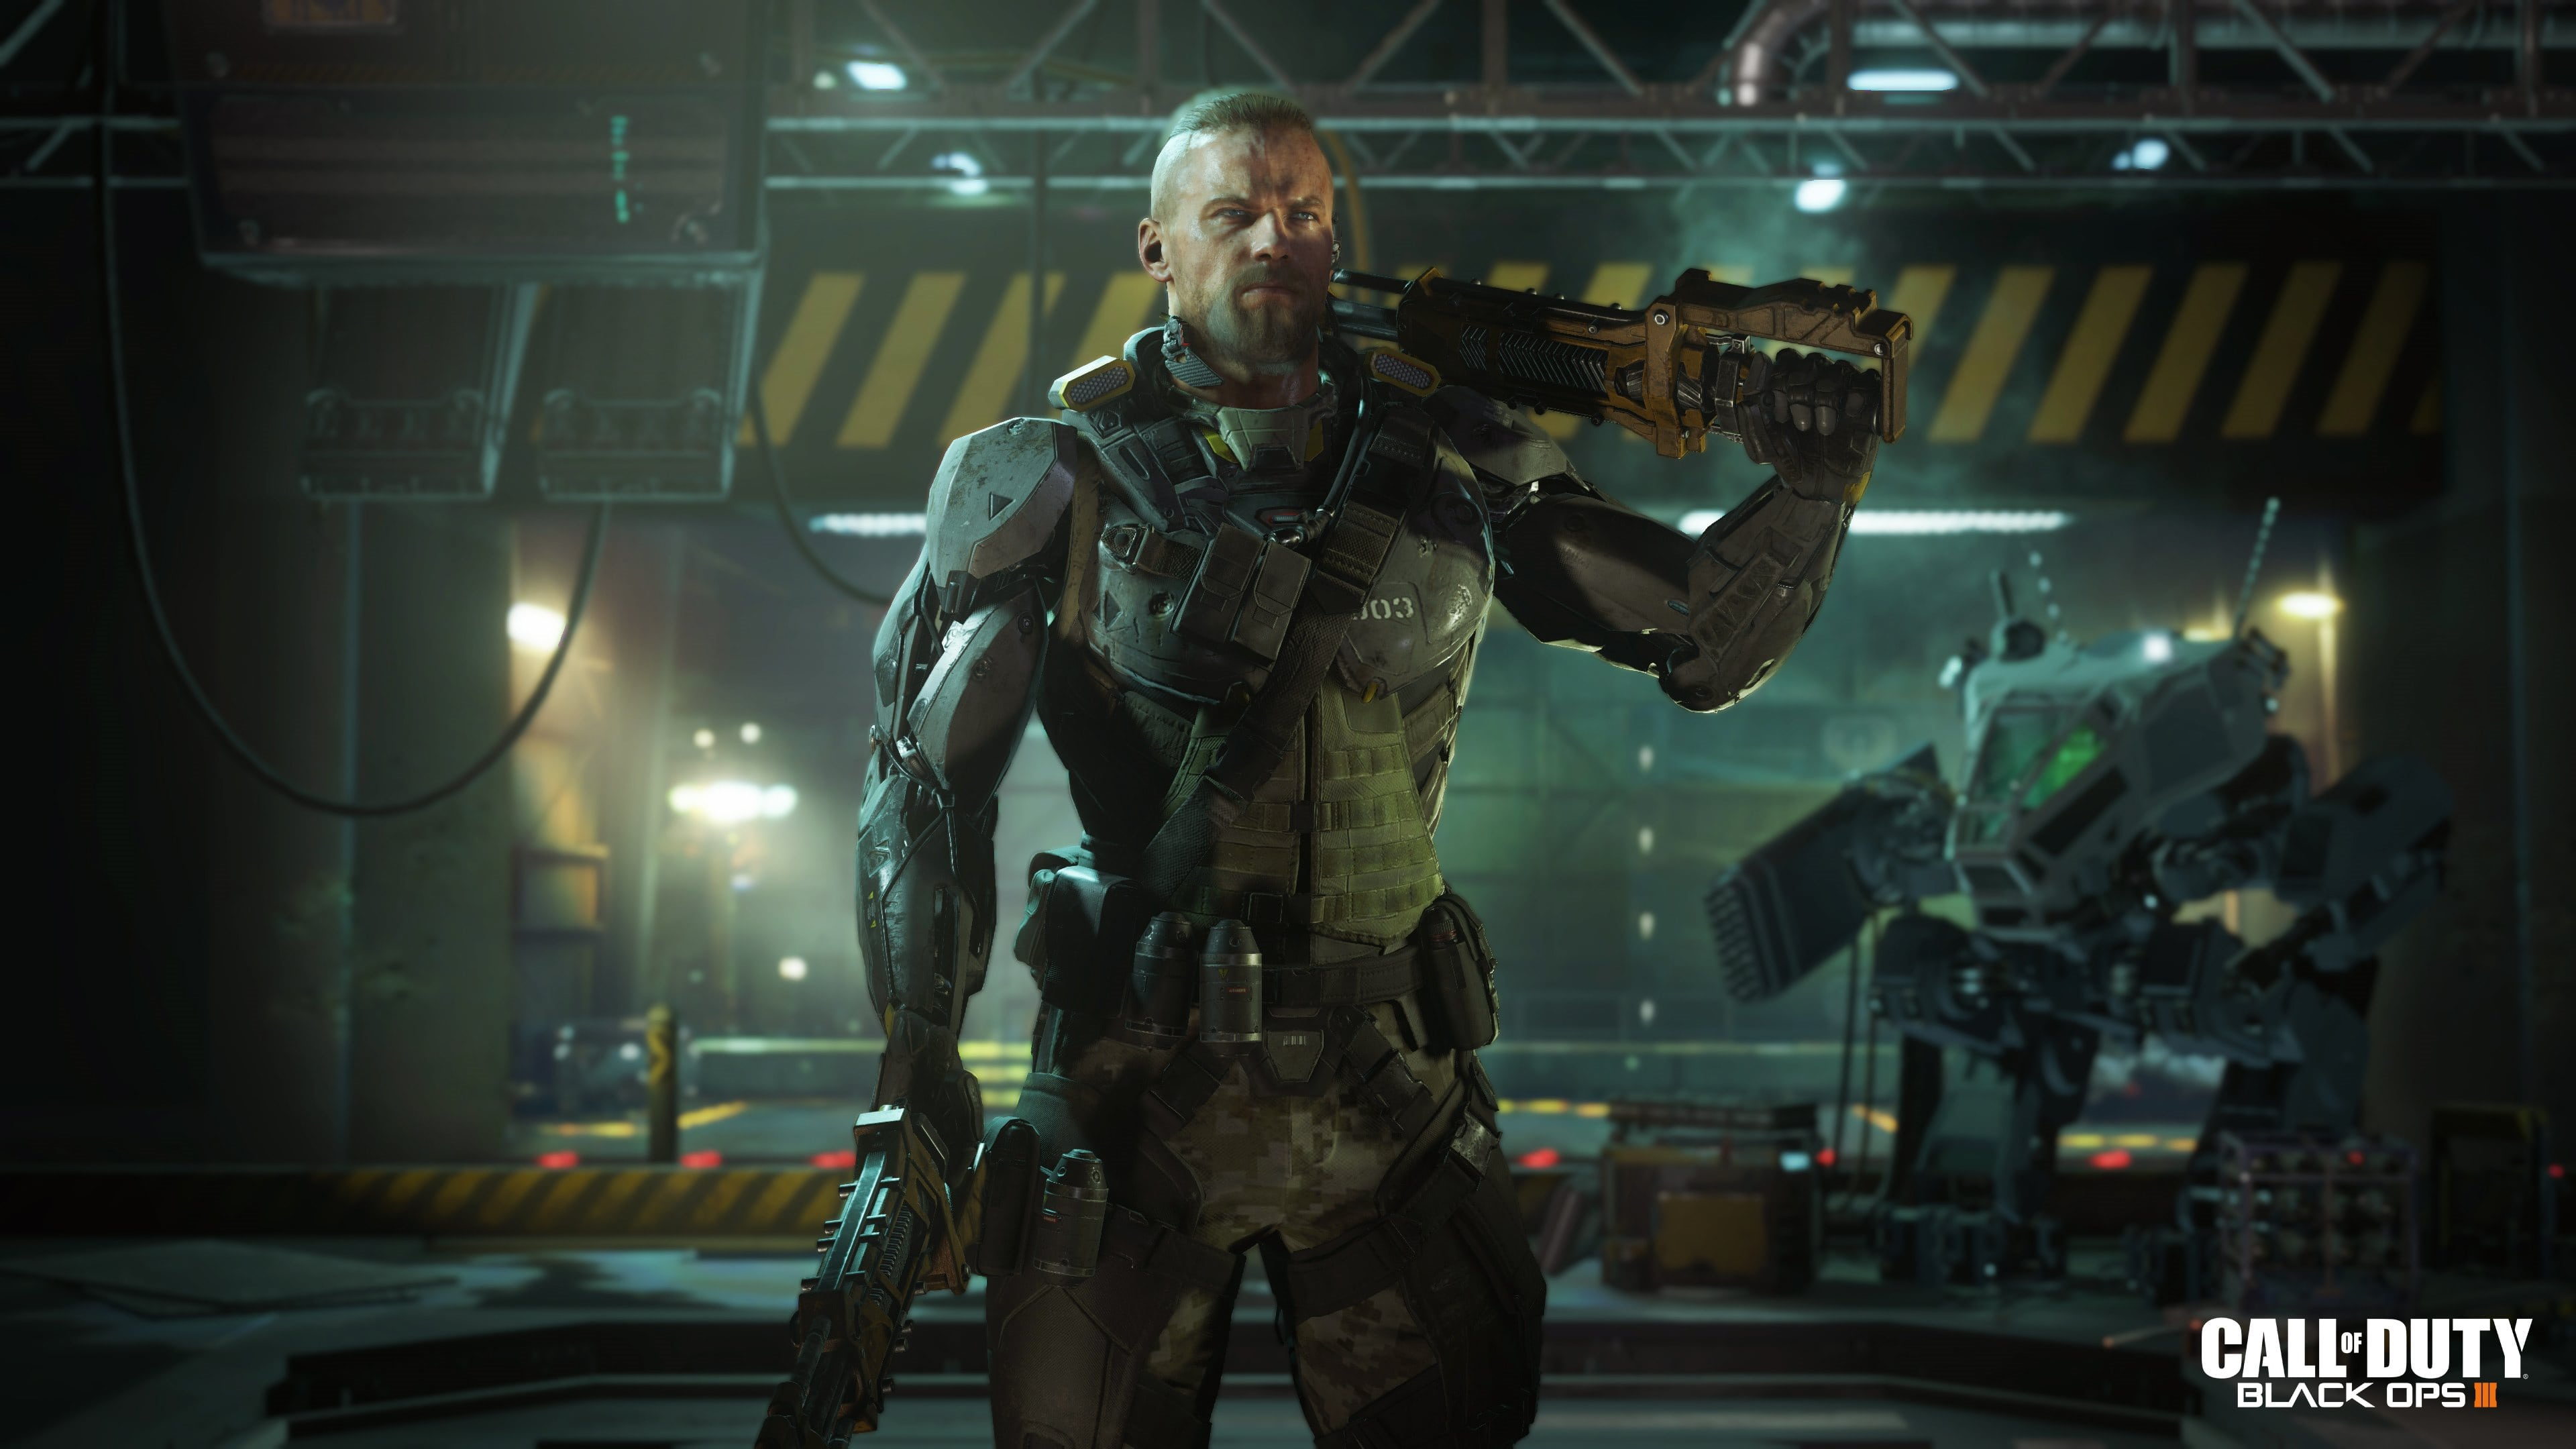 Call of Duty: Black Ops 3 Widescreen for desktop